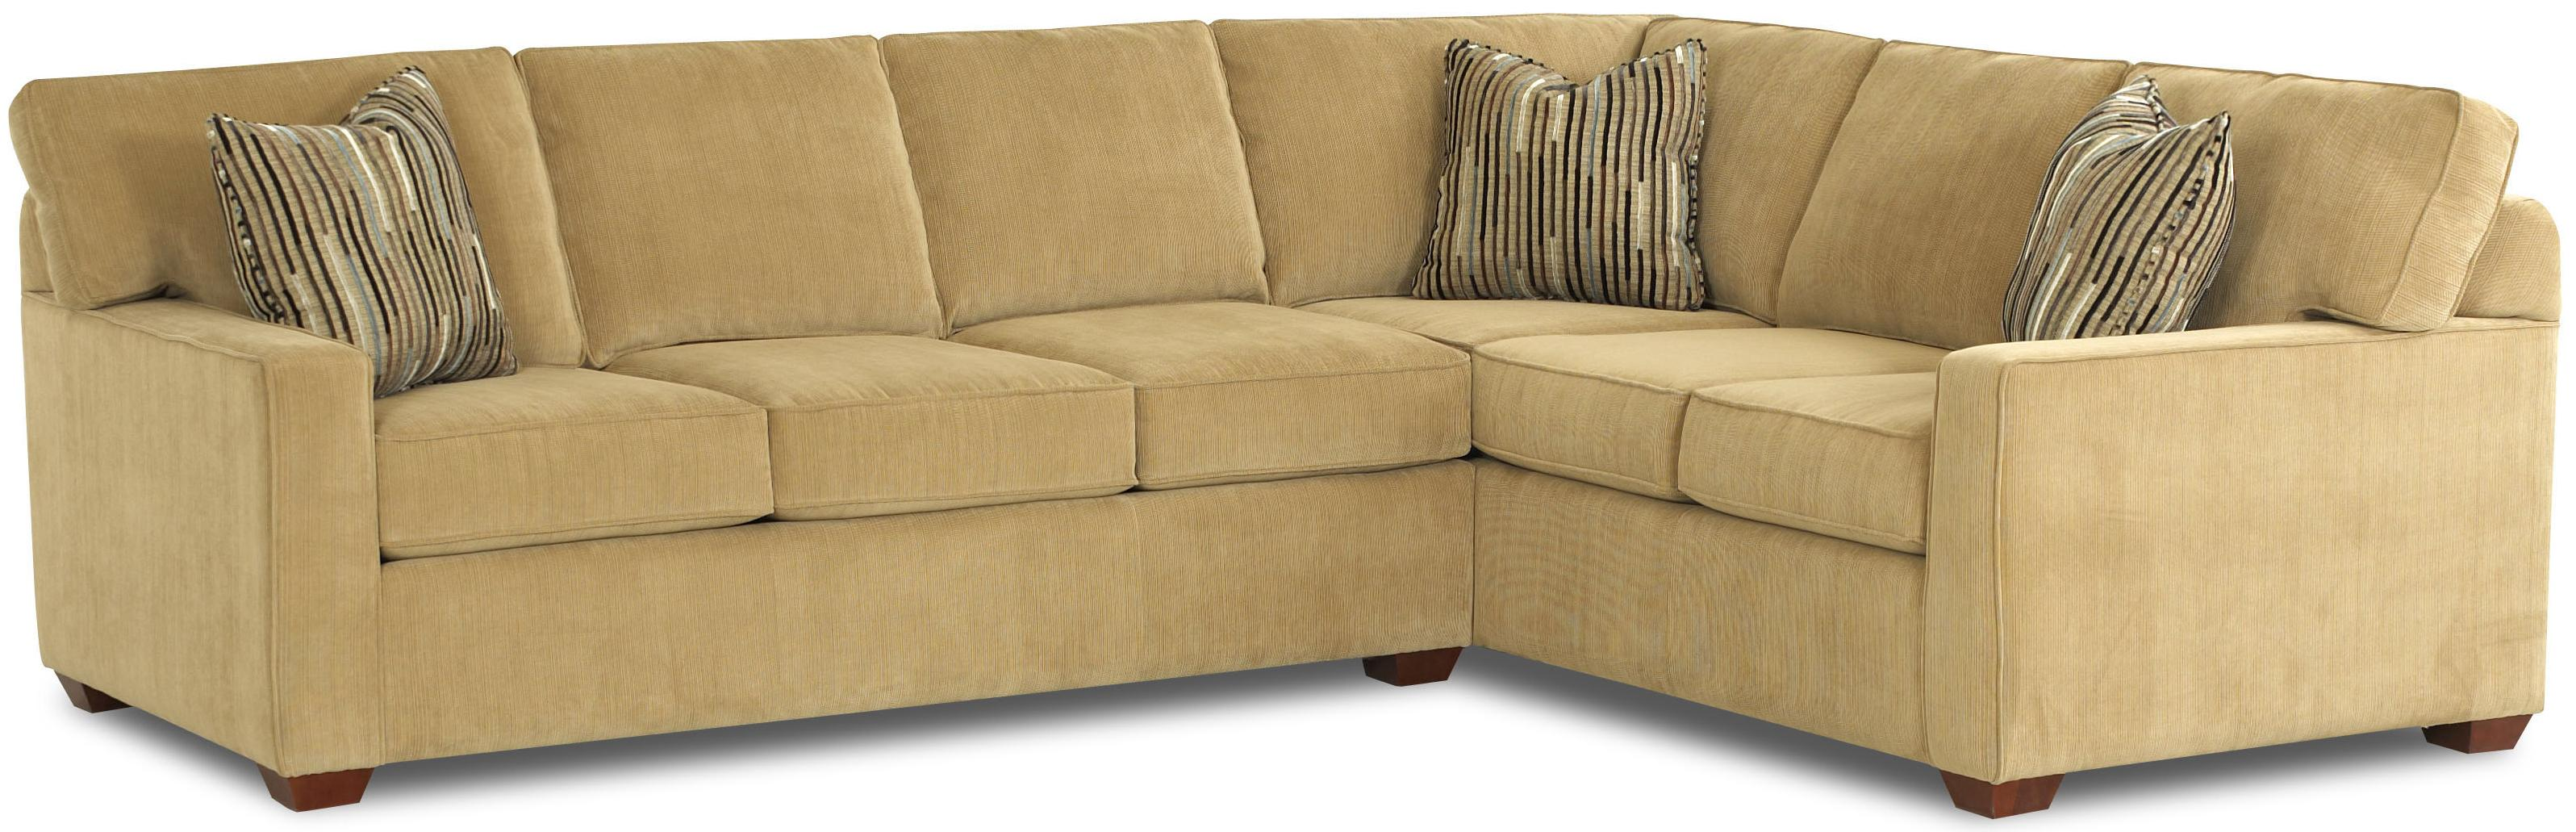 L shaped contemporary sectional sofa by klaussner wolf for S shaped sectional sofa